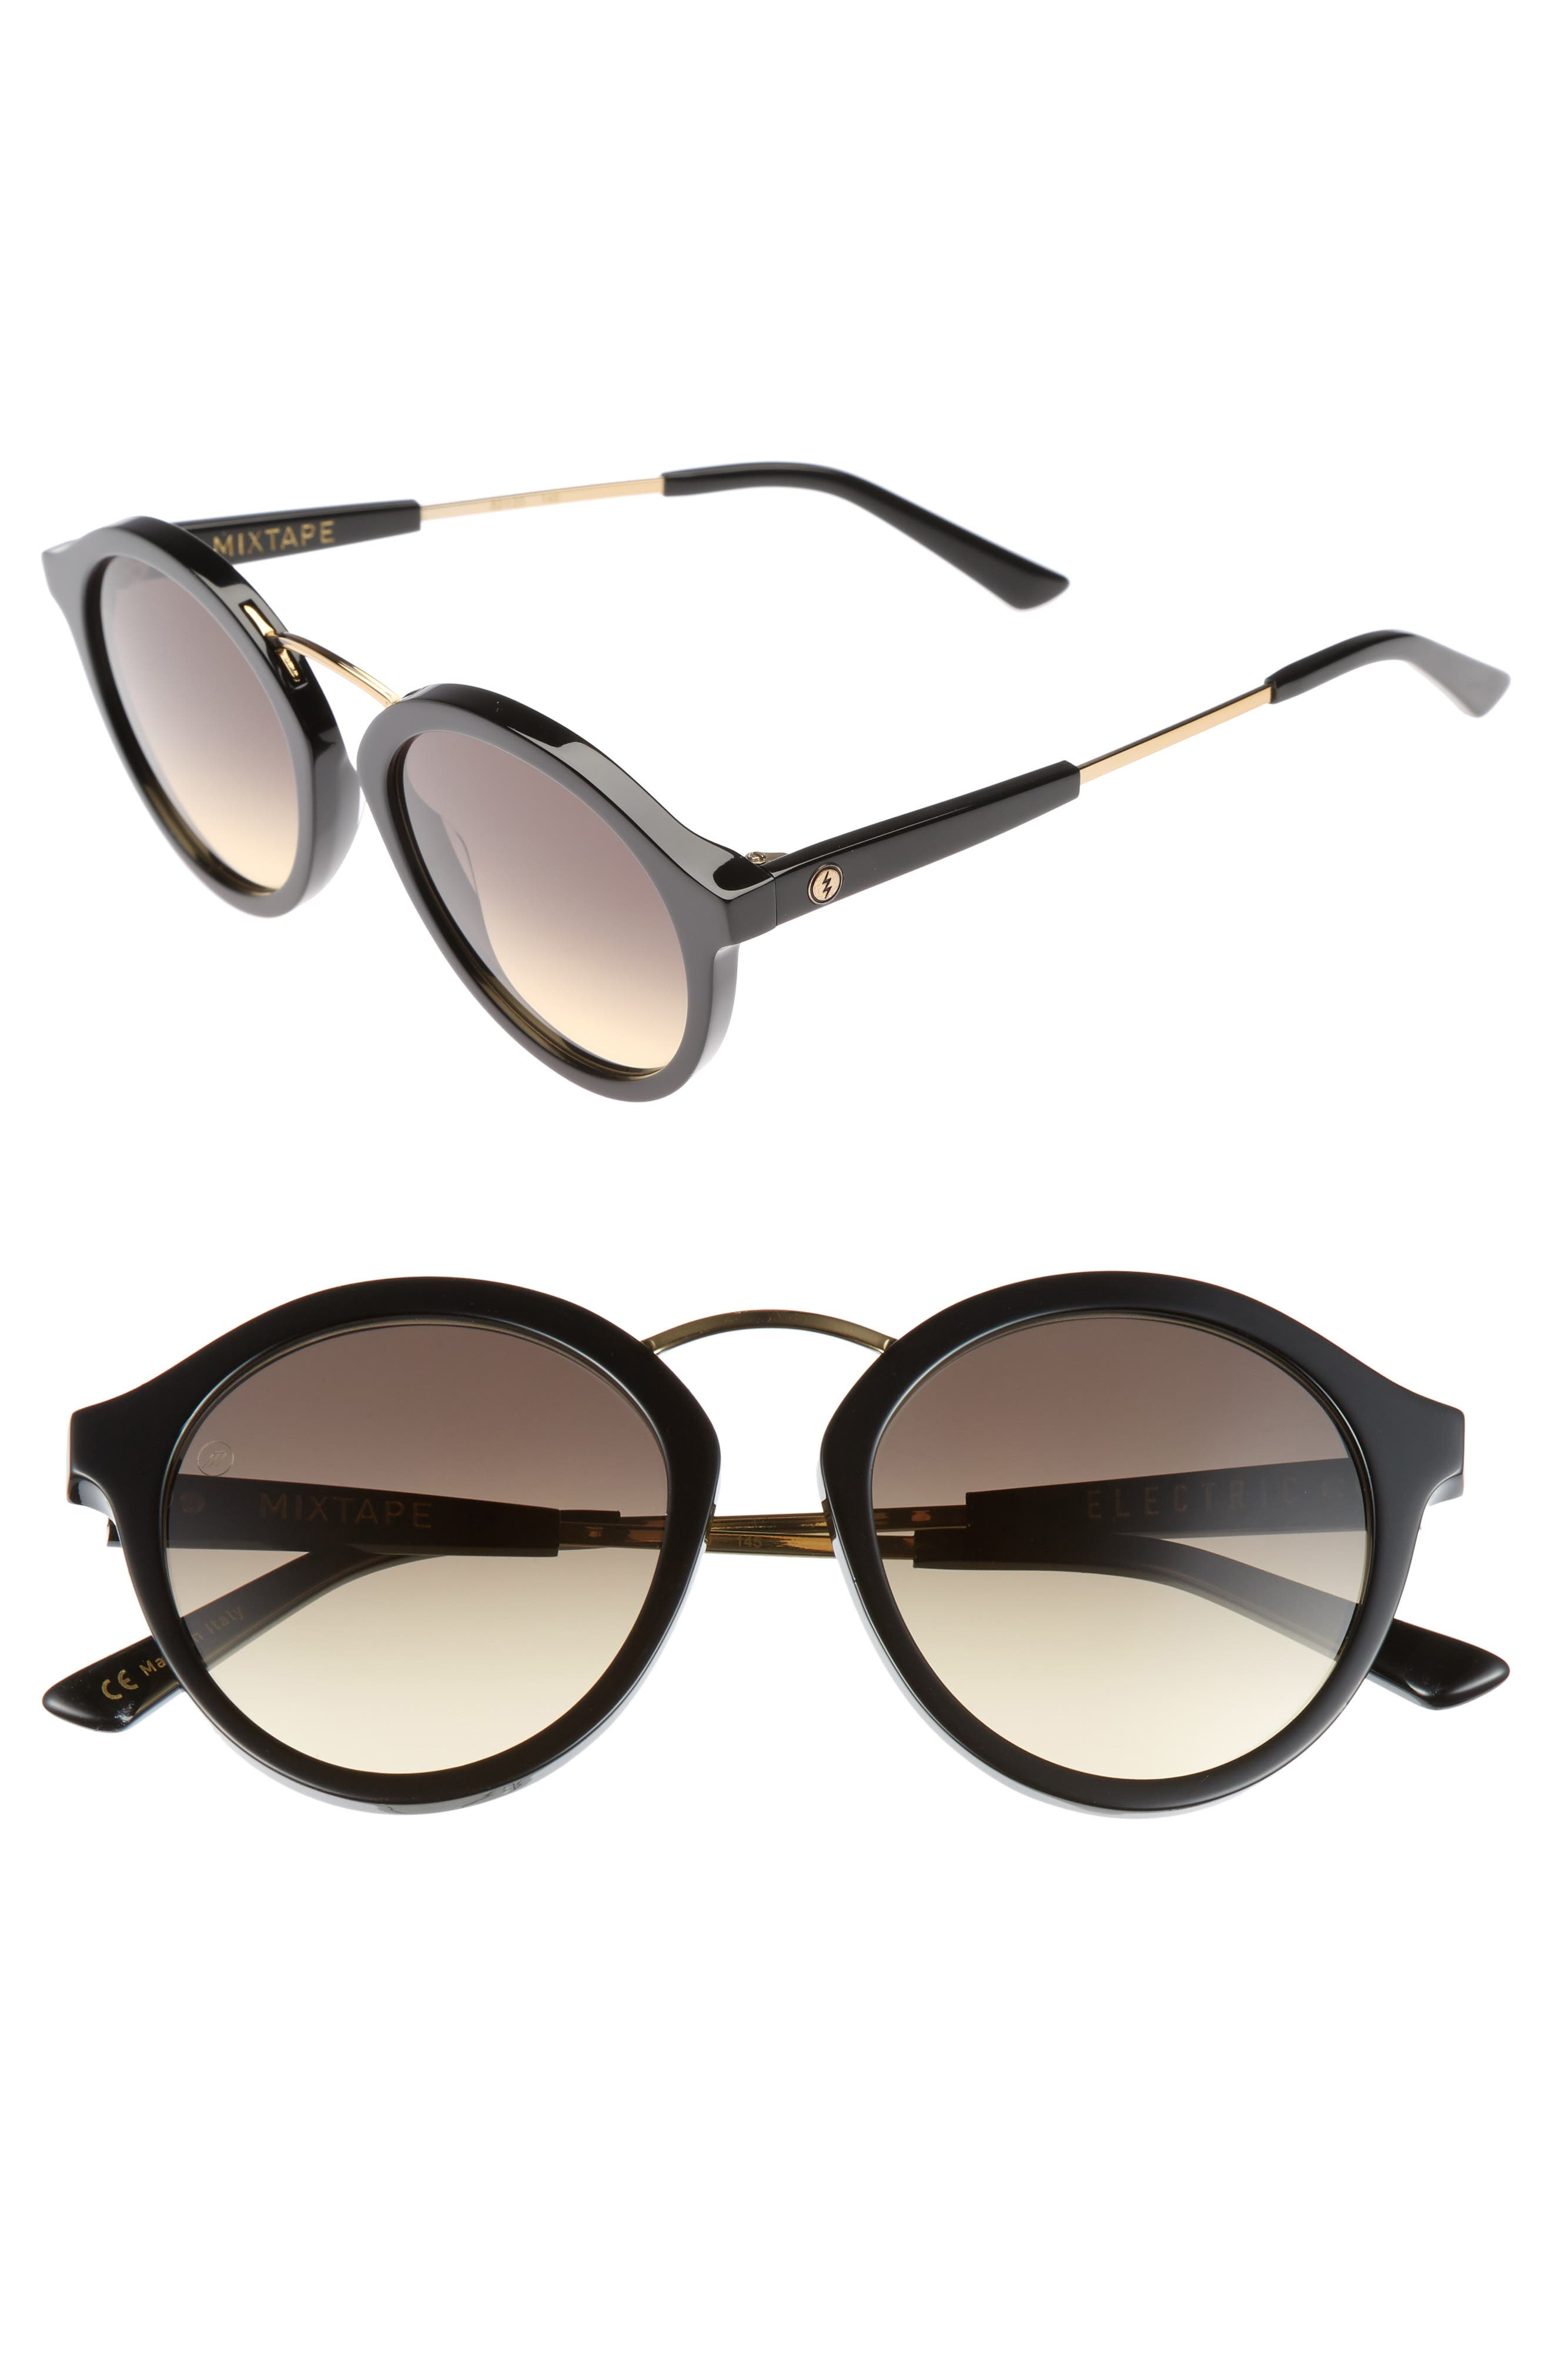 Mix Tape 52mm Gradient Round Sunglasses,                             Main thumbnail 1, color,                             001